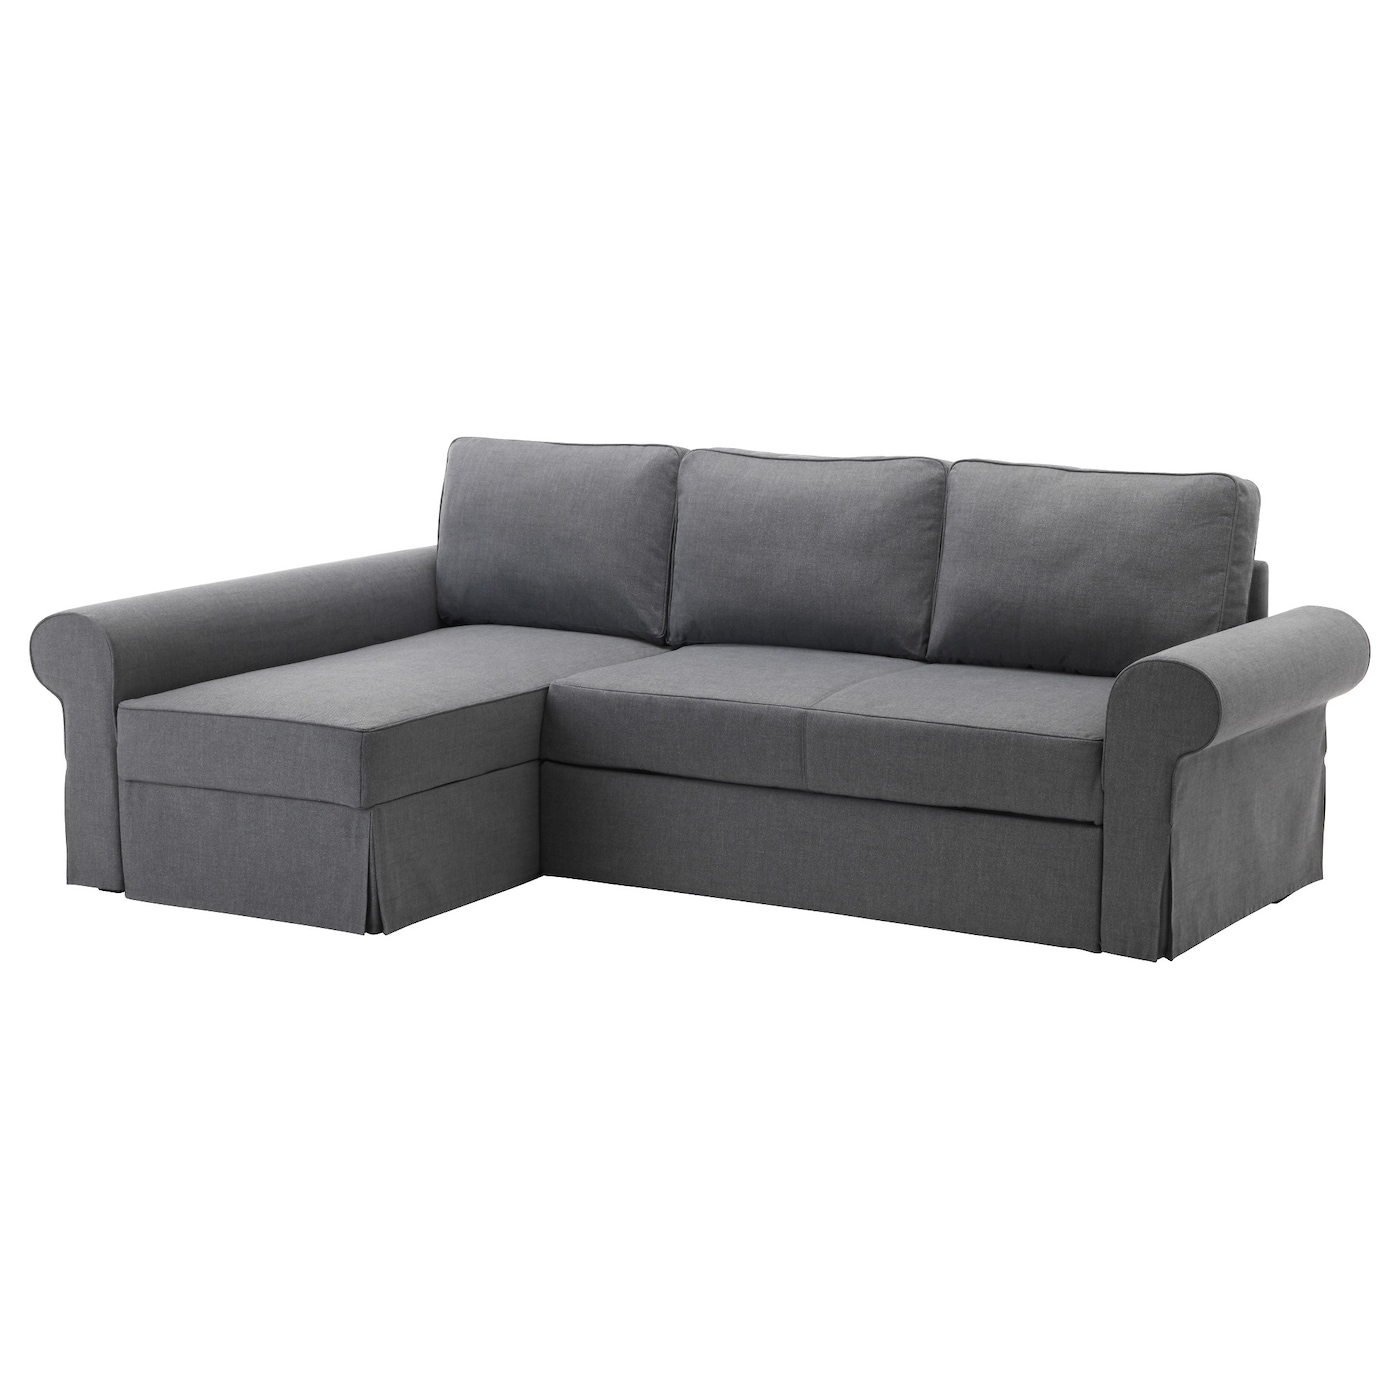 Backabro sofa bed with chaise longue nordvalla dark grey for Cama convertible ikea